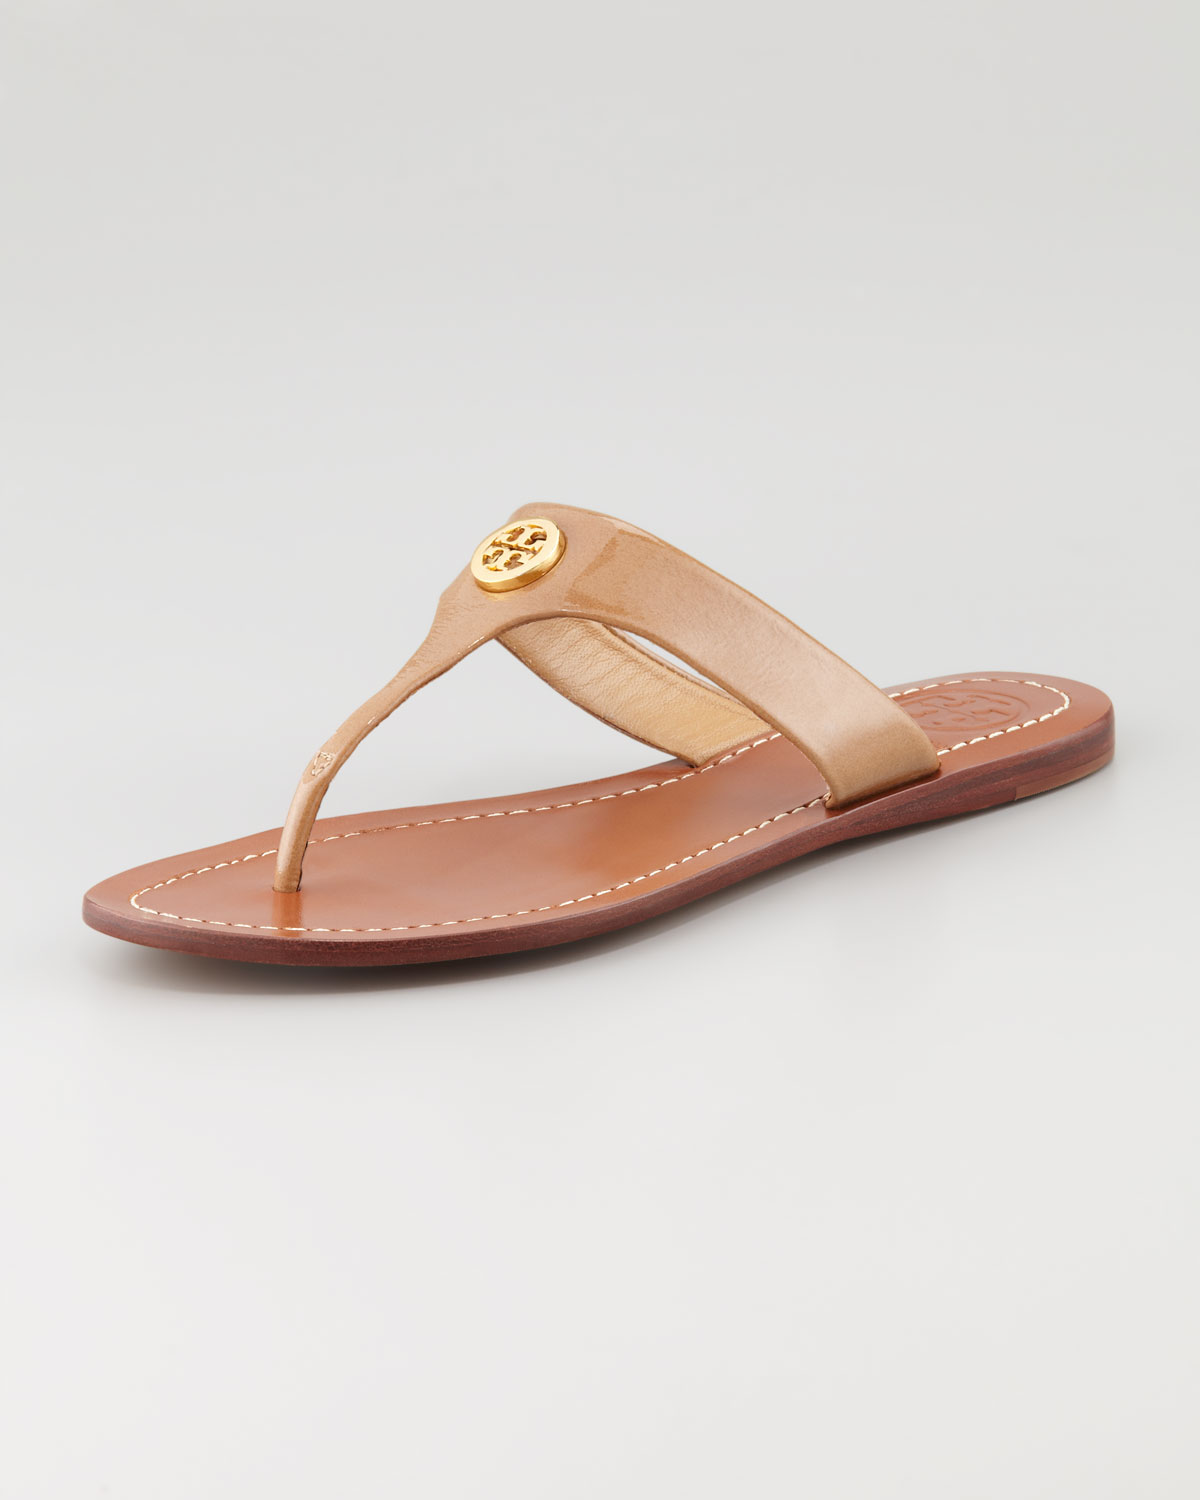 ac66ace30d1267 Lyst - Tory Burch Cameron Patent Logo Thong Sandal Sand in Brown